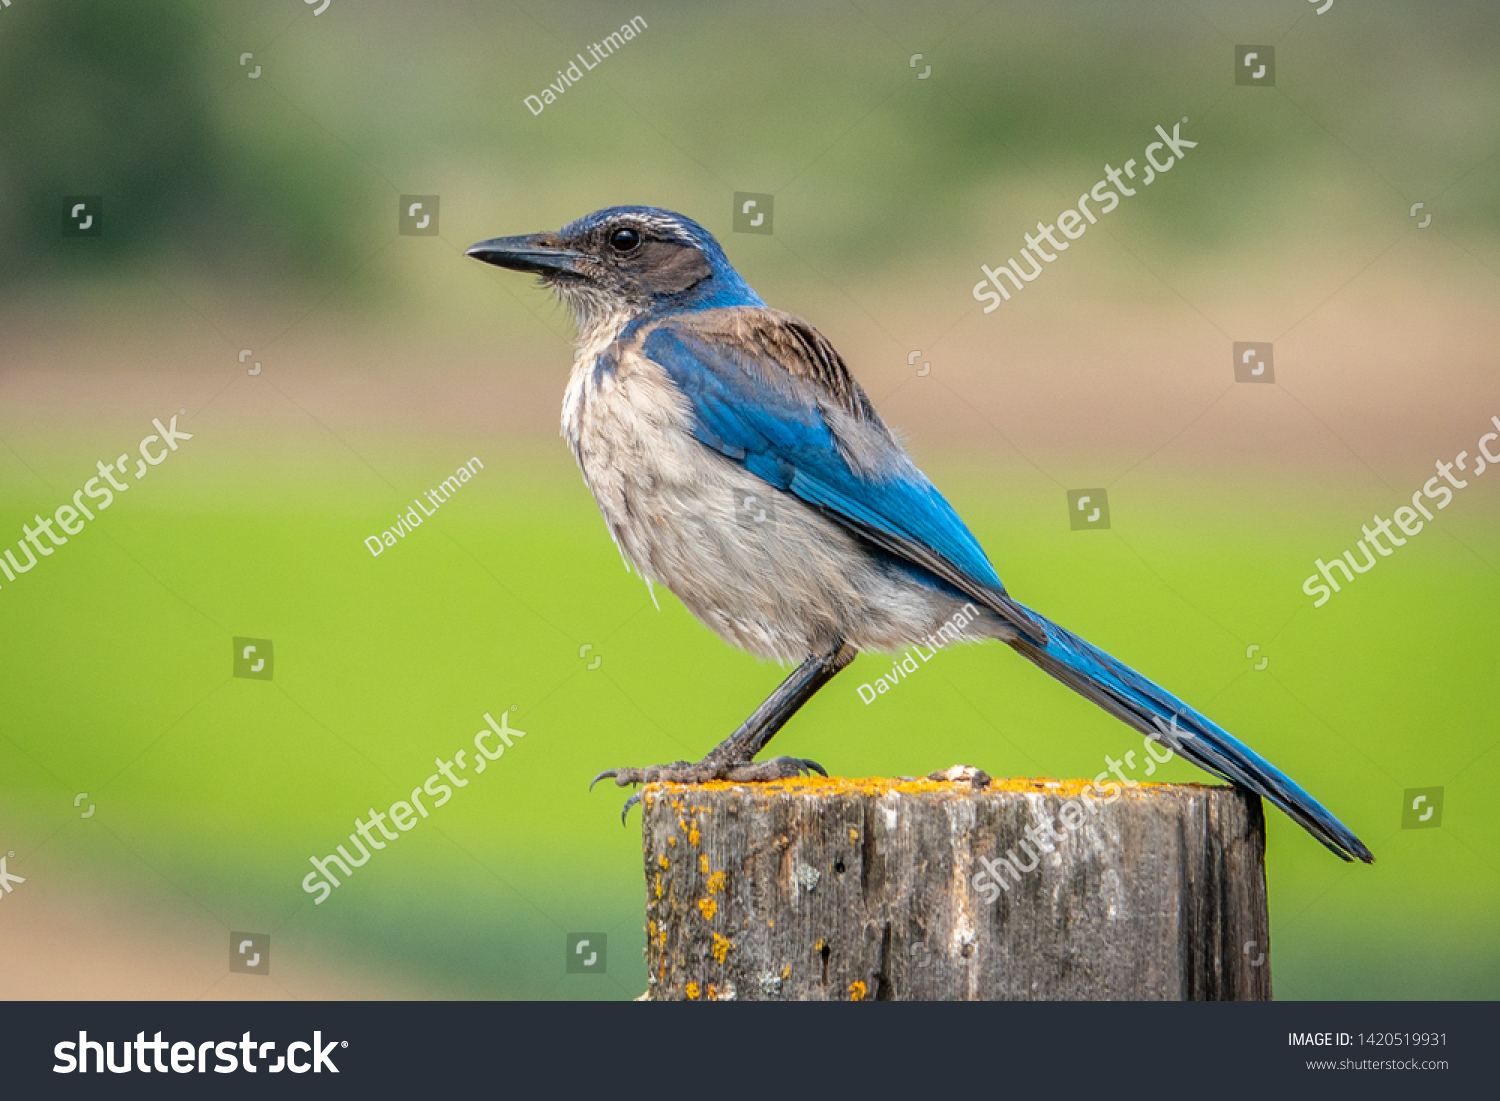 The California scrub (blue) jay ( Aphelocoma californica) ranges from southern British Columbia throughout California and western Nevada near Reno to west of the Sierra Nevada.